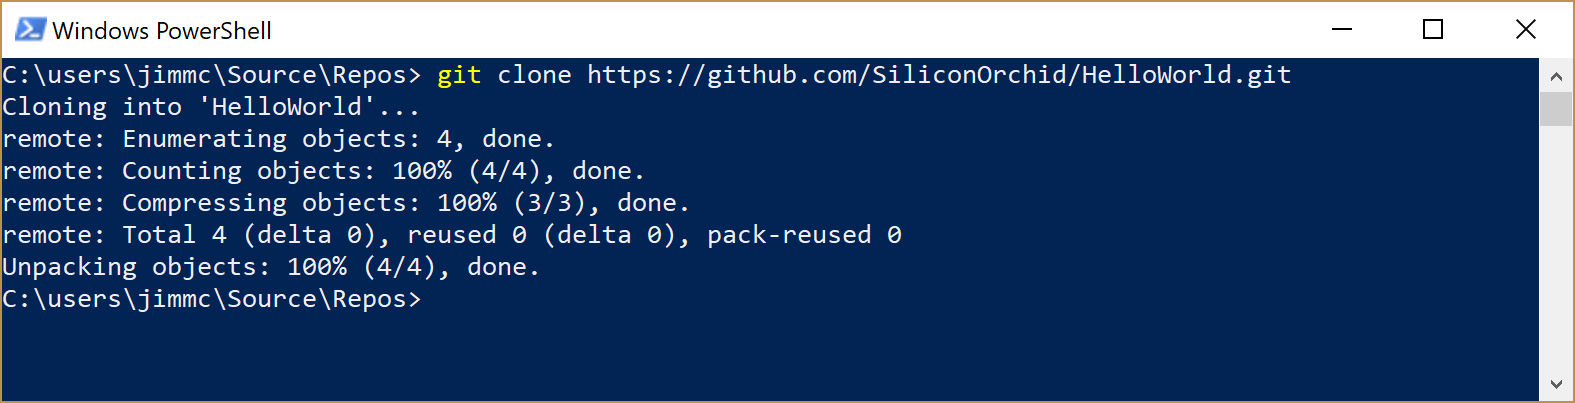 image showing git clone command